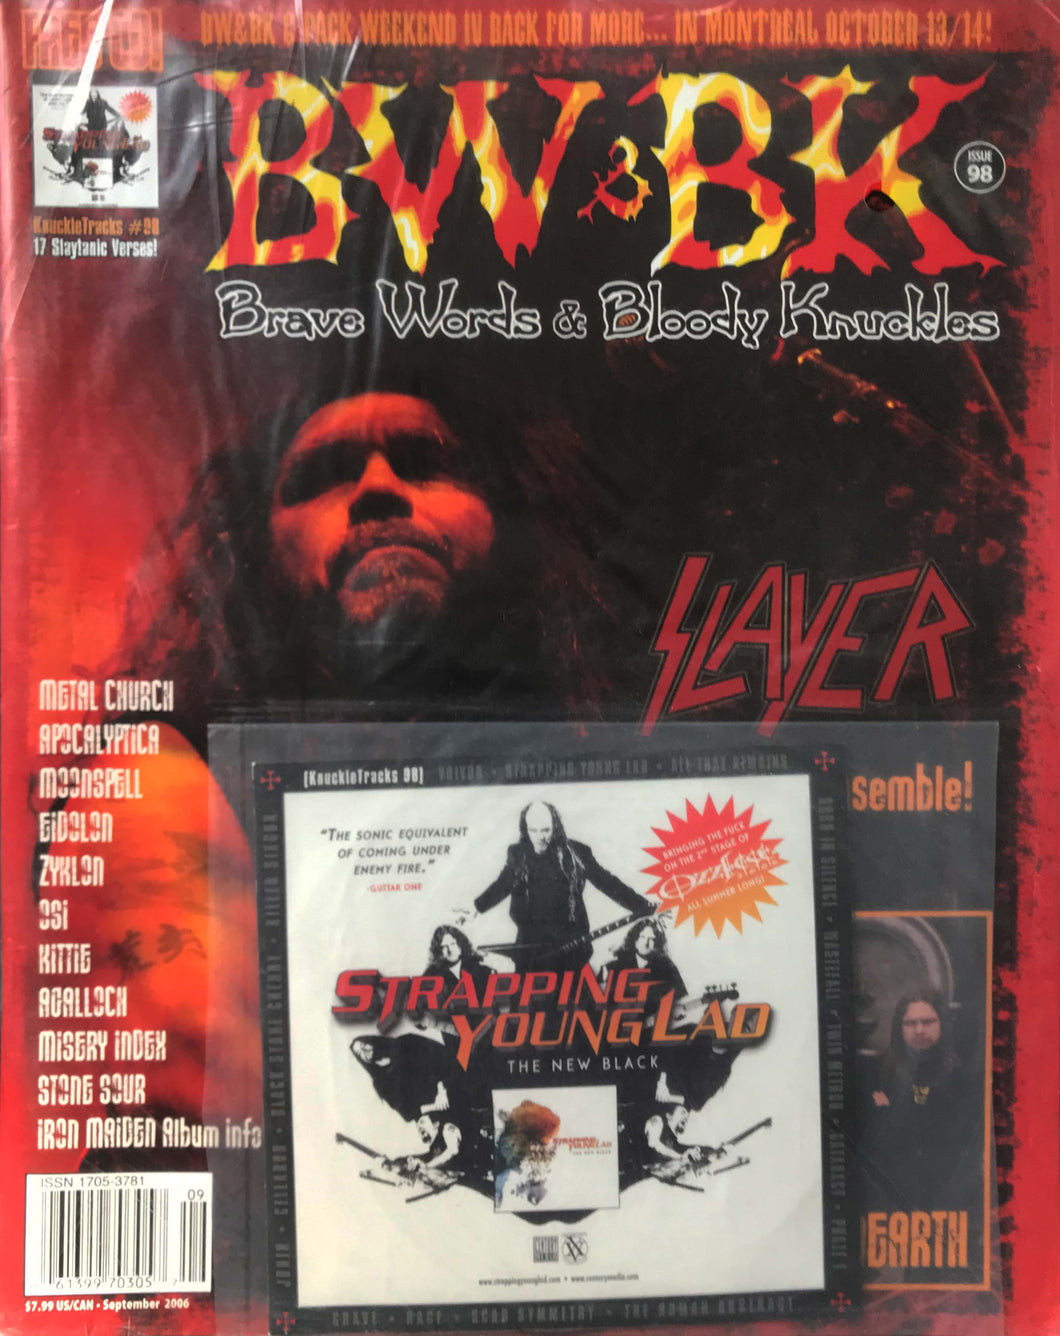 BW&BK Issue 98 (Slayer) w/ FREE CD !